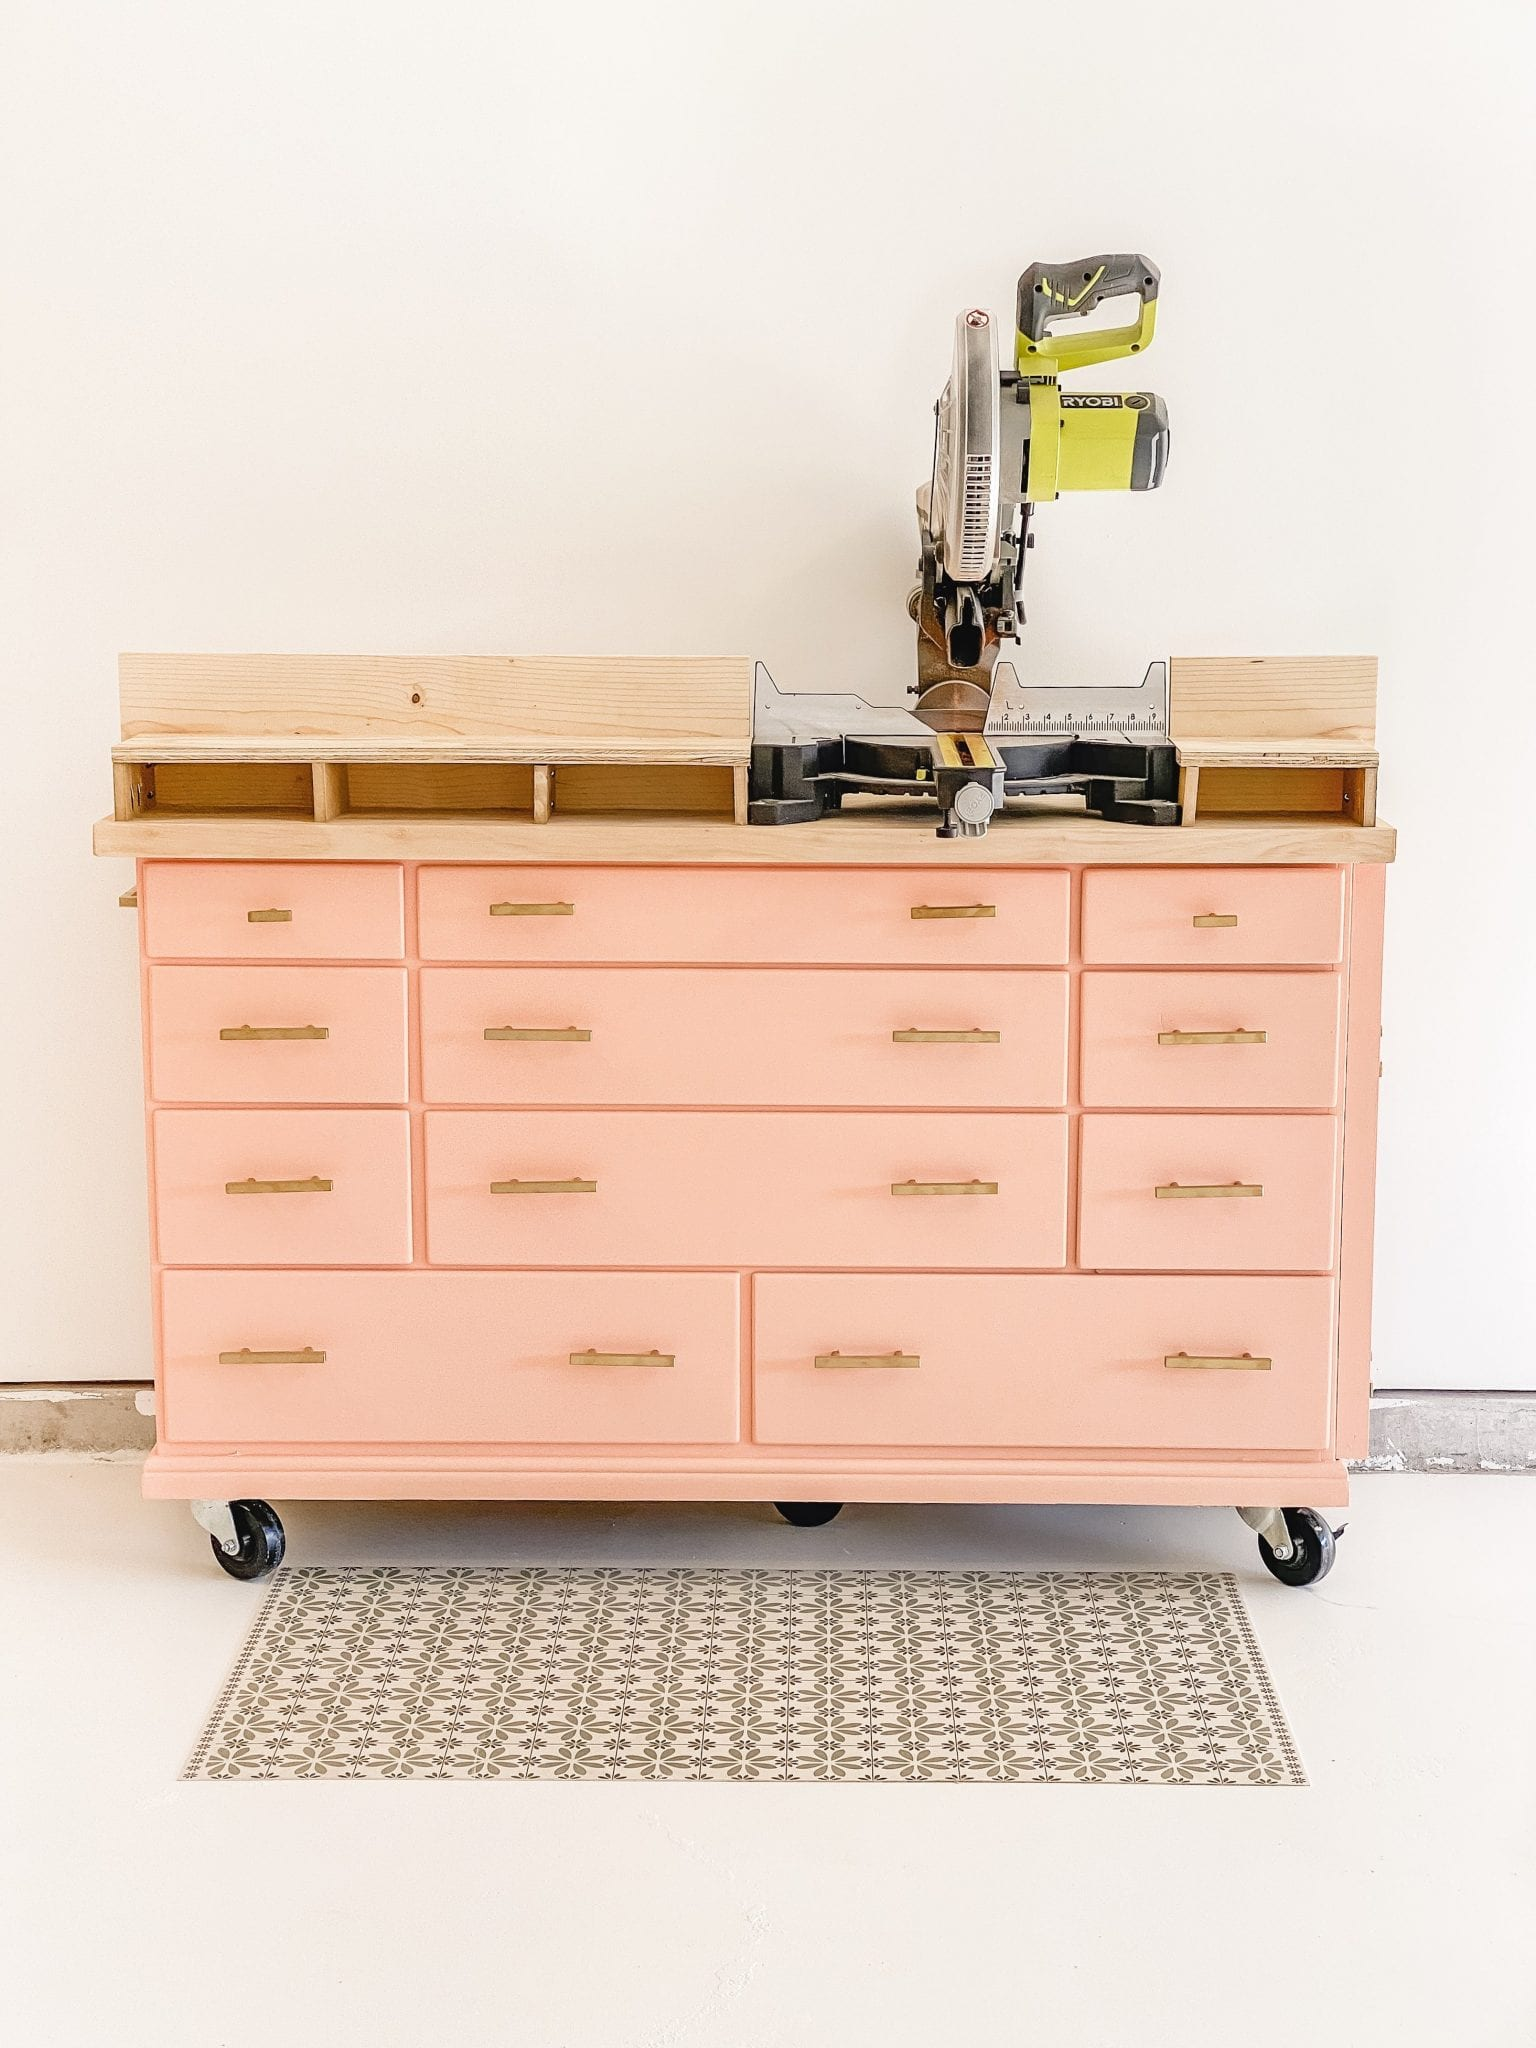 miter saw station | miter saw station DIY | miter saw table DIYl | miter saw bench plans | Never Skip Brunch by Cara Newhart | #home #diy #decor #neverskipbrunch